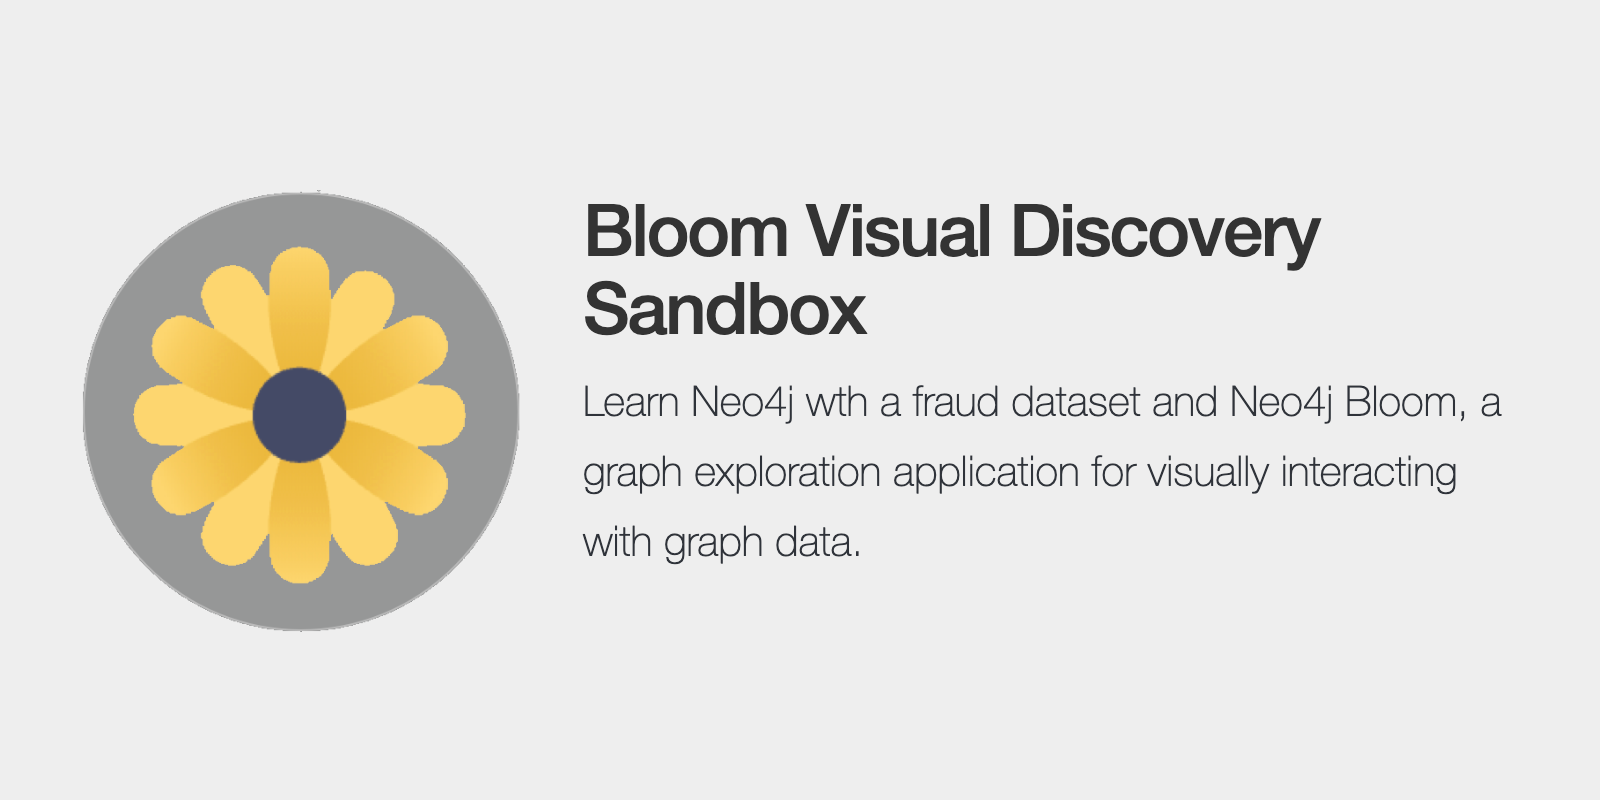 Bloom Visual Discovery Sandbox